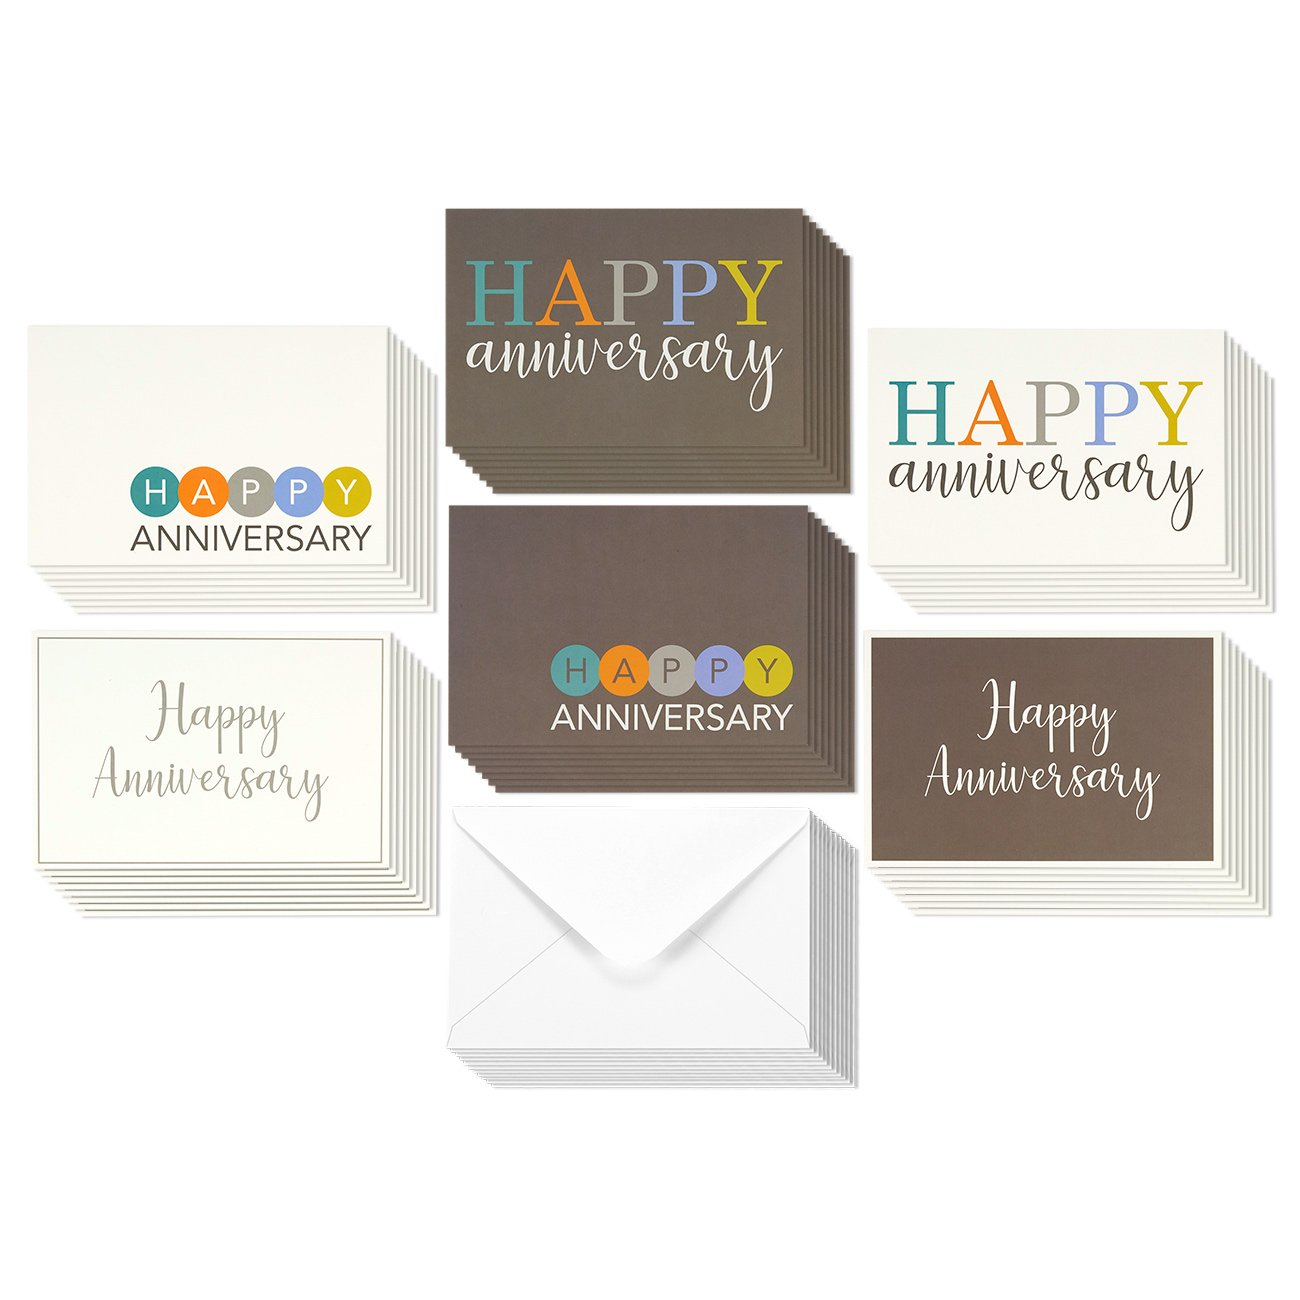 36 Pack Happy Anniversary Greeting Cards 6 Modern Multi Color Embellished Style Designs Bulk